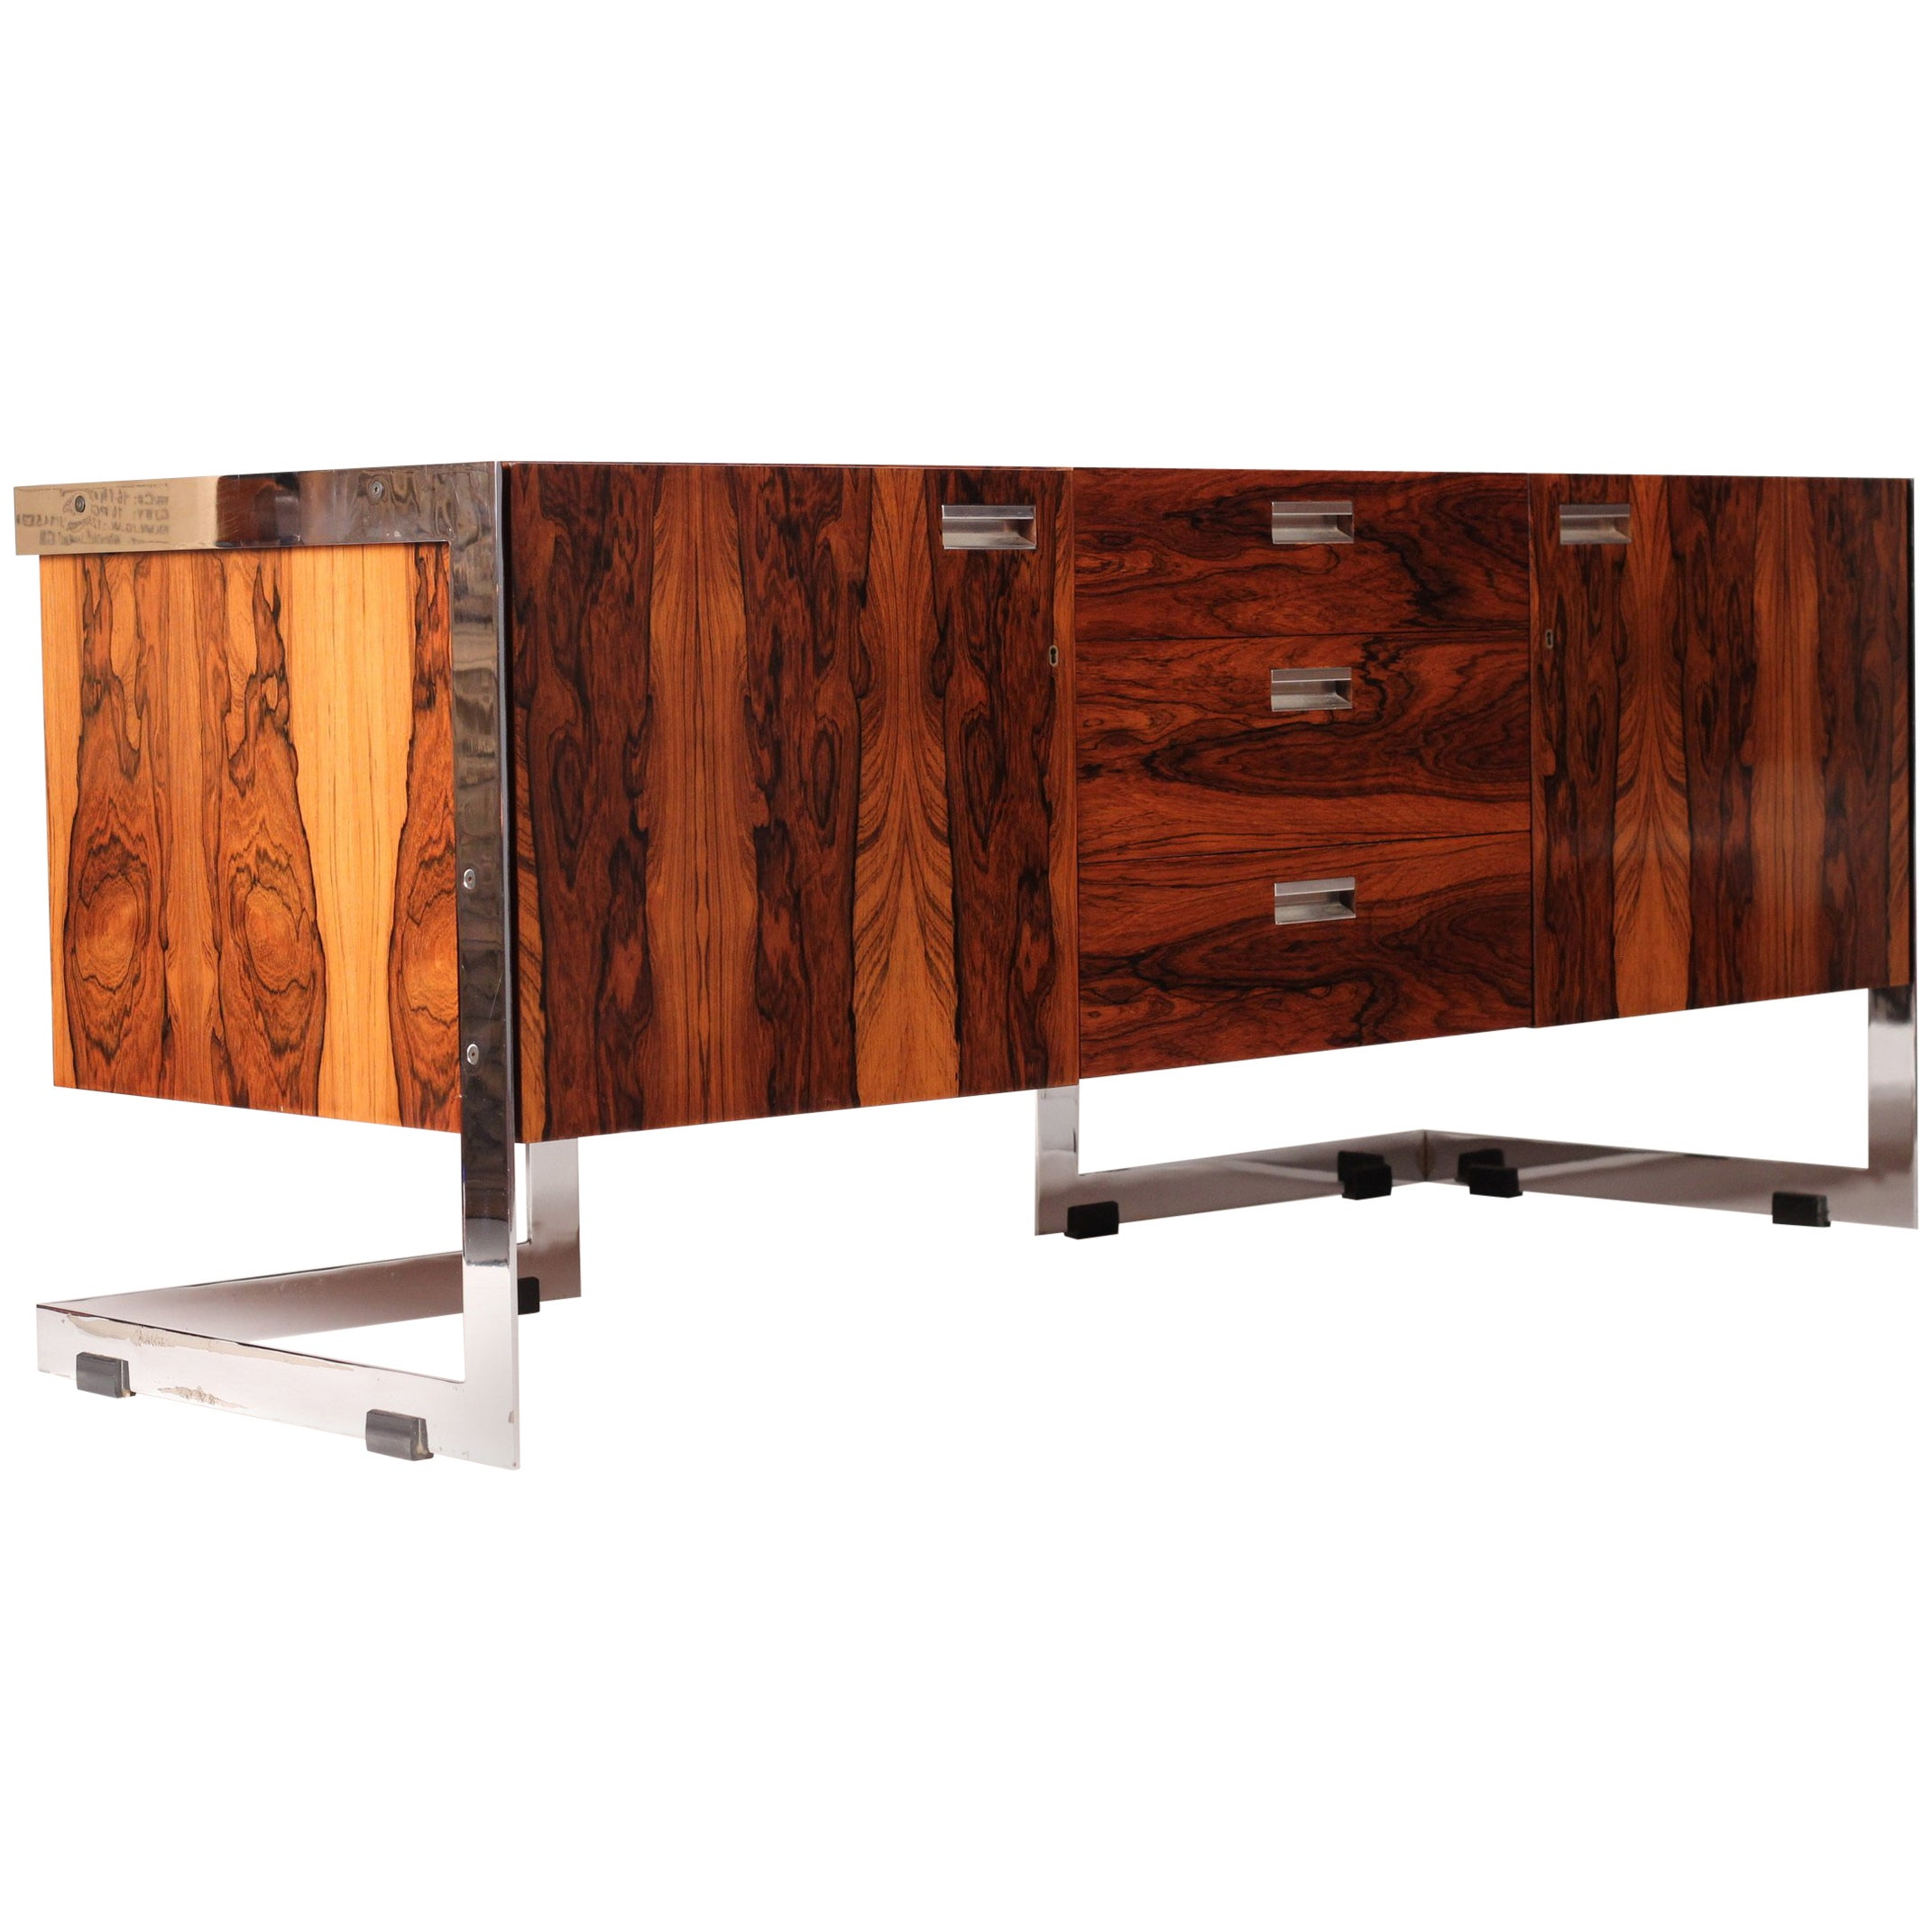 Midcentury Rosewood Sideboard Designed by Richard Young for Merrow Associates